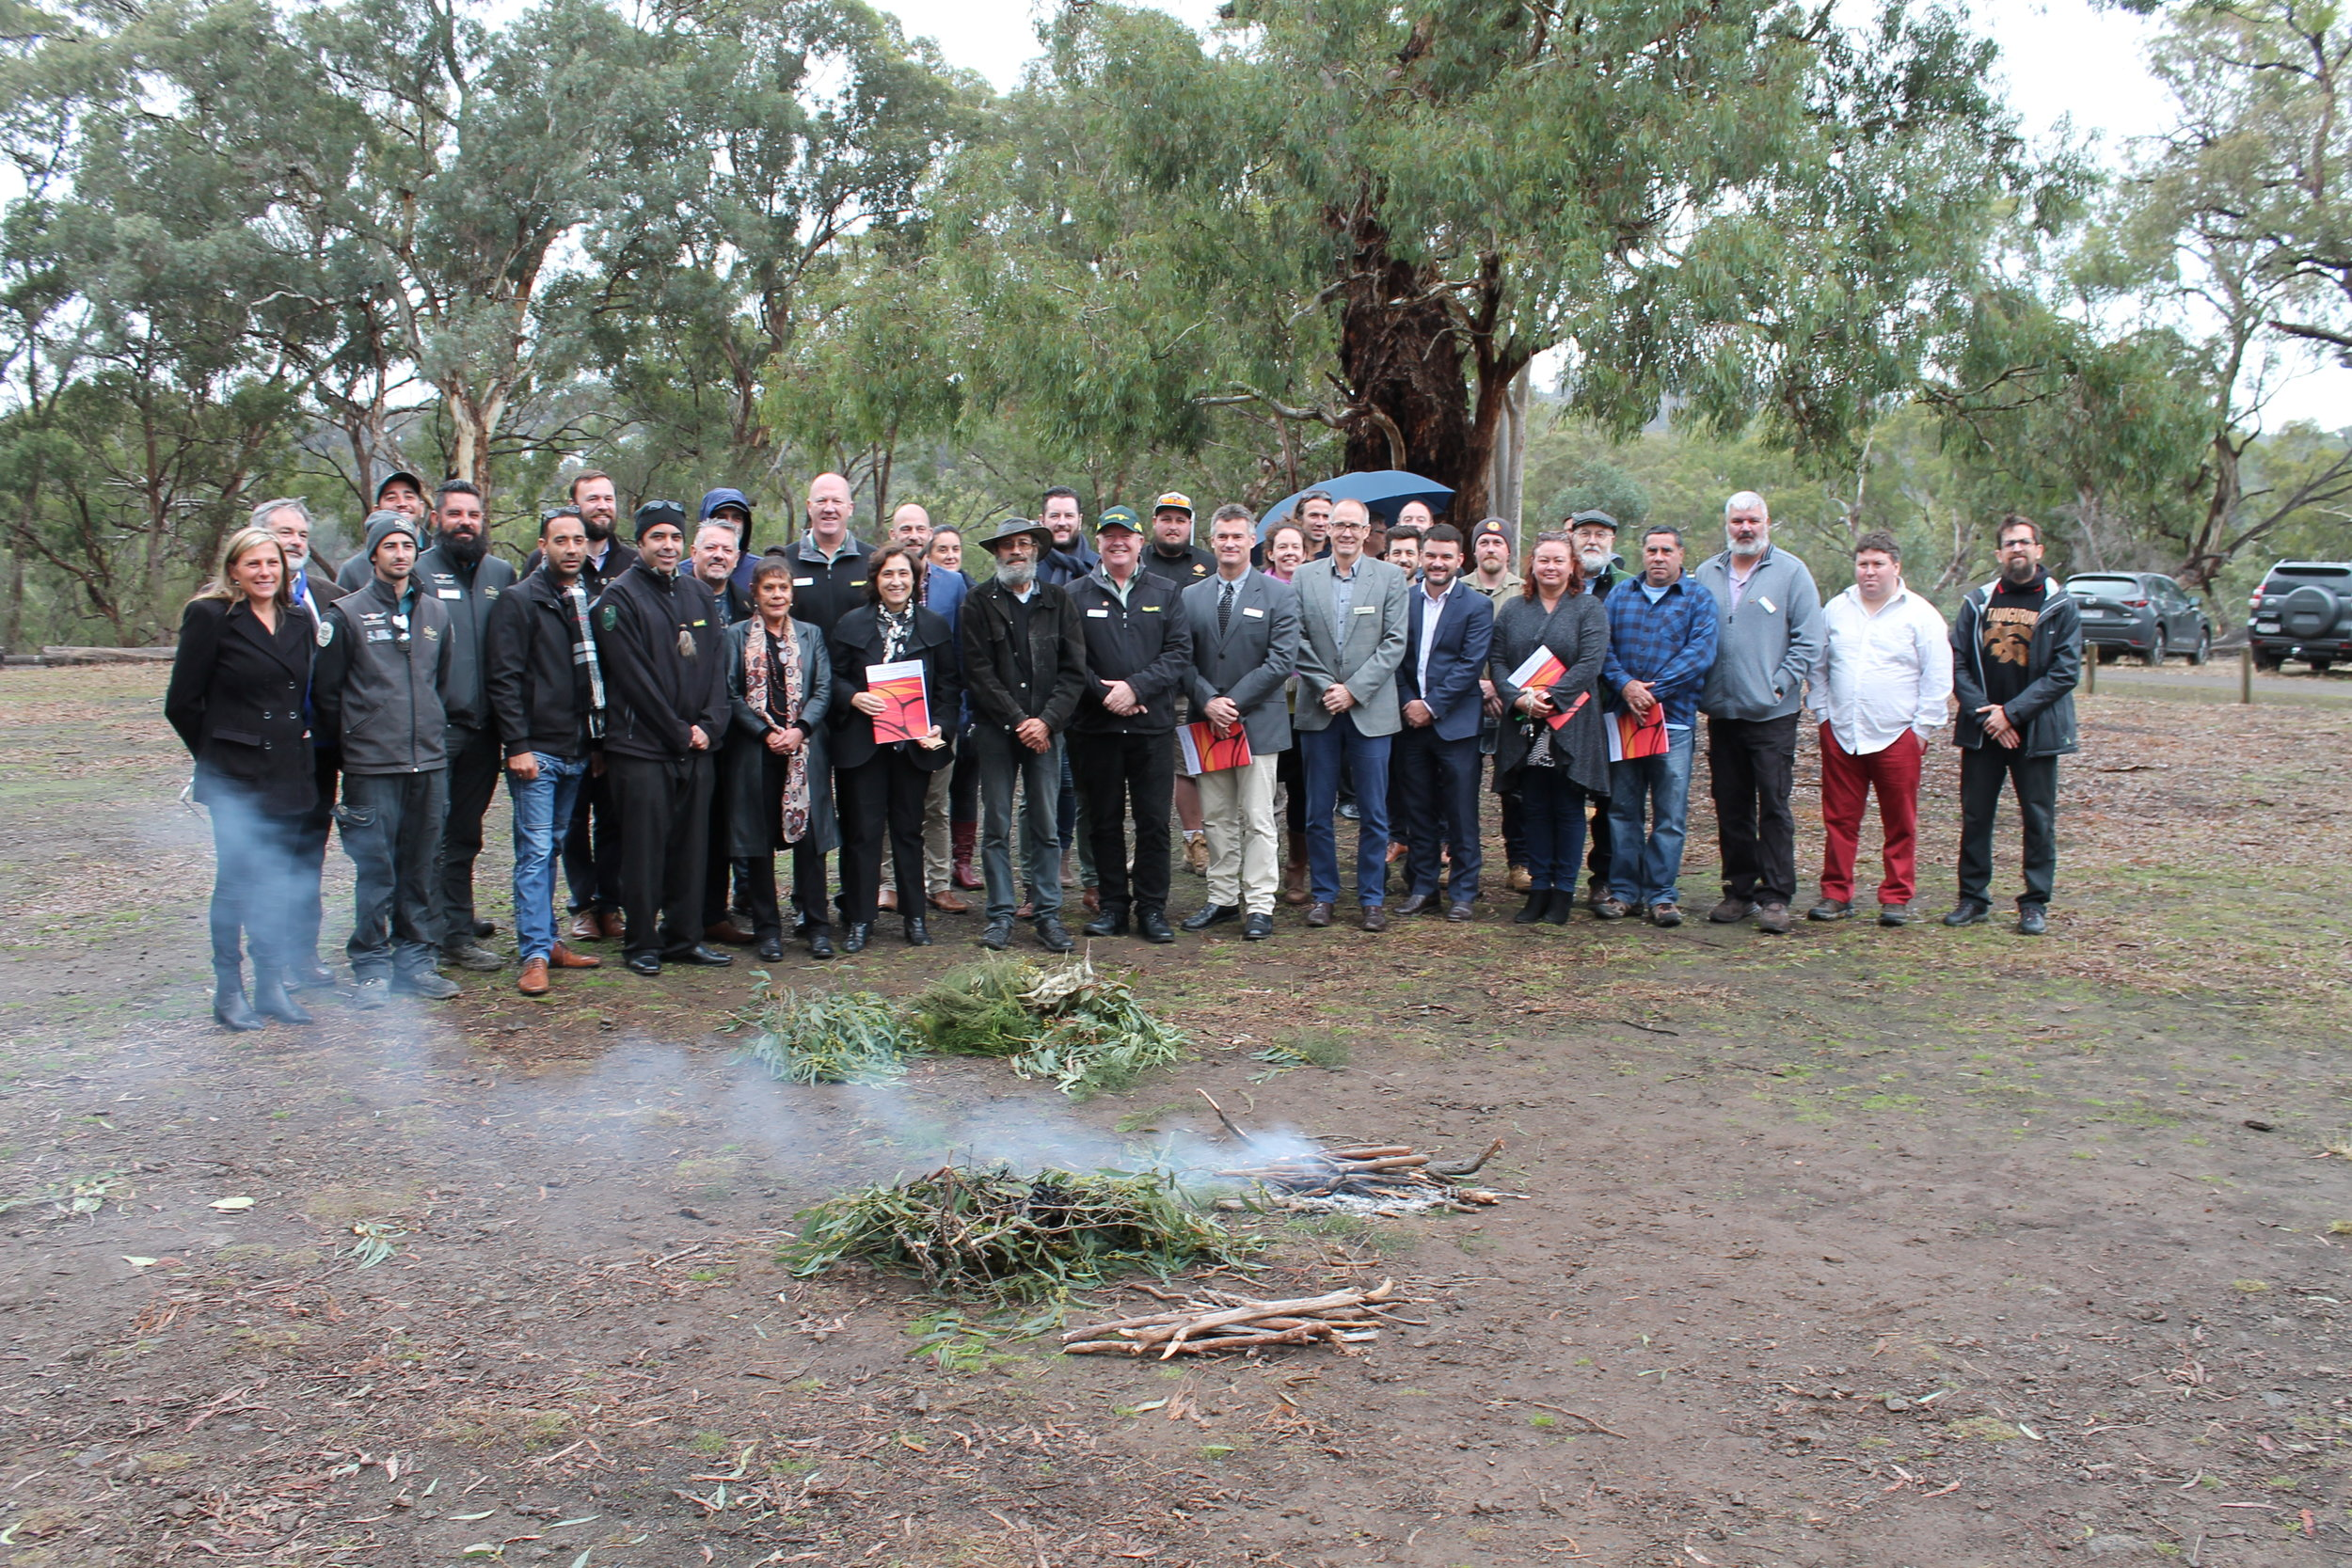 Victorian Traditional Owner Cultural Fire Strategy launch at Nioka Bush Camp.